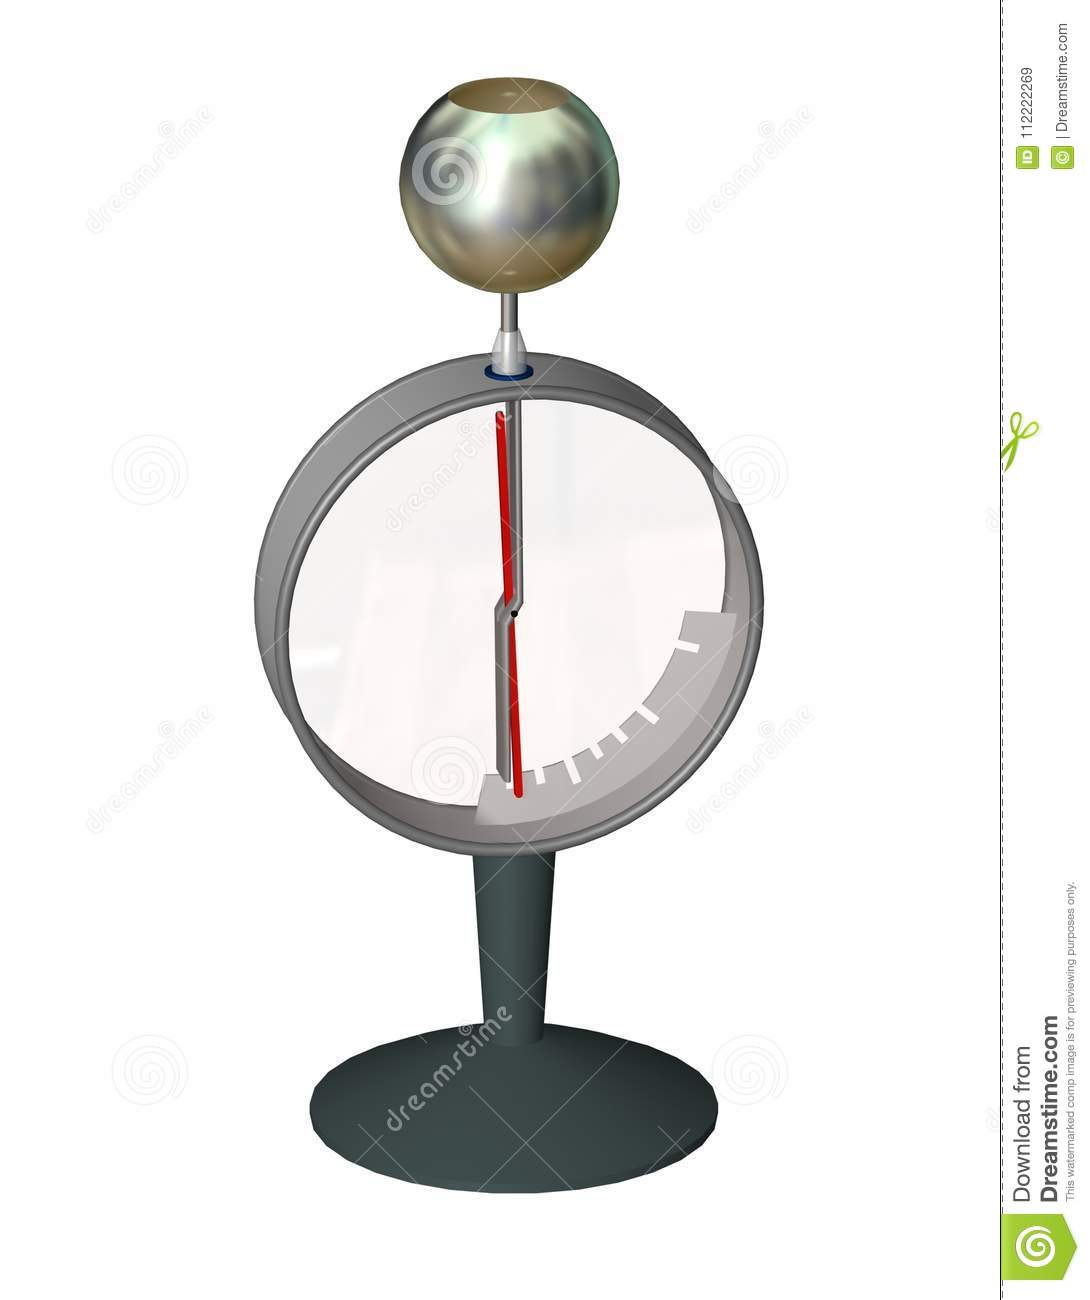 Science Physics Difference: An Electrometer. Electrical Instrument For Measuring